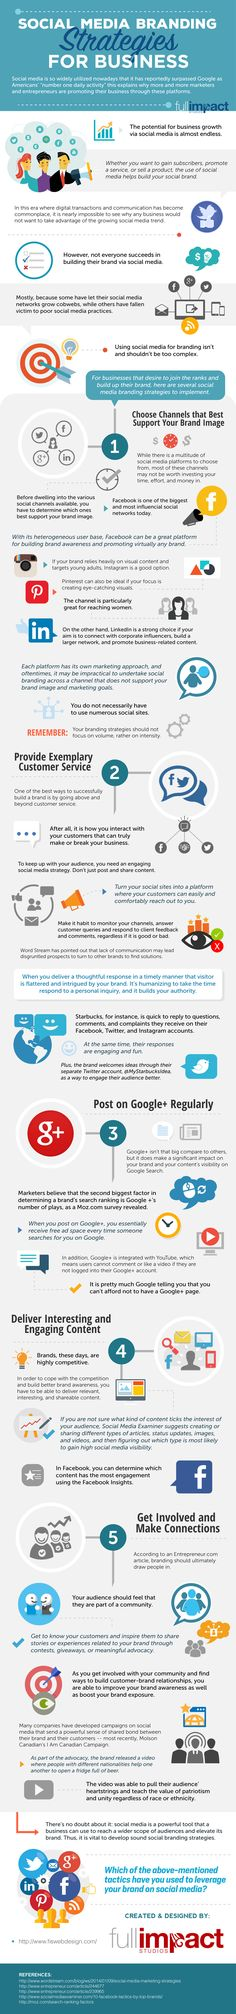 social media branding strategies for businesses. Not sure about point #3! Ha!